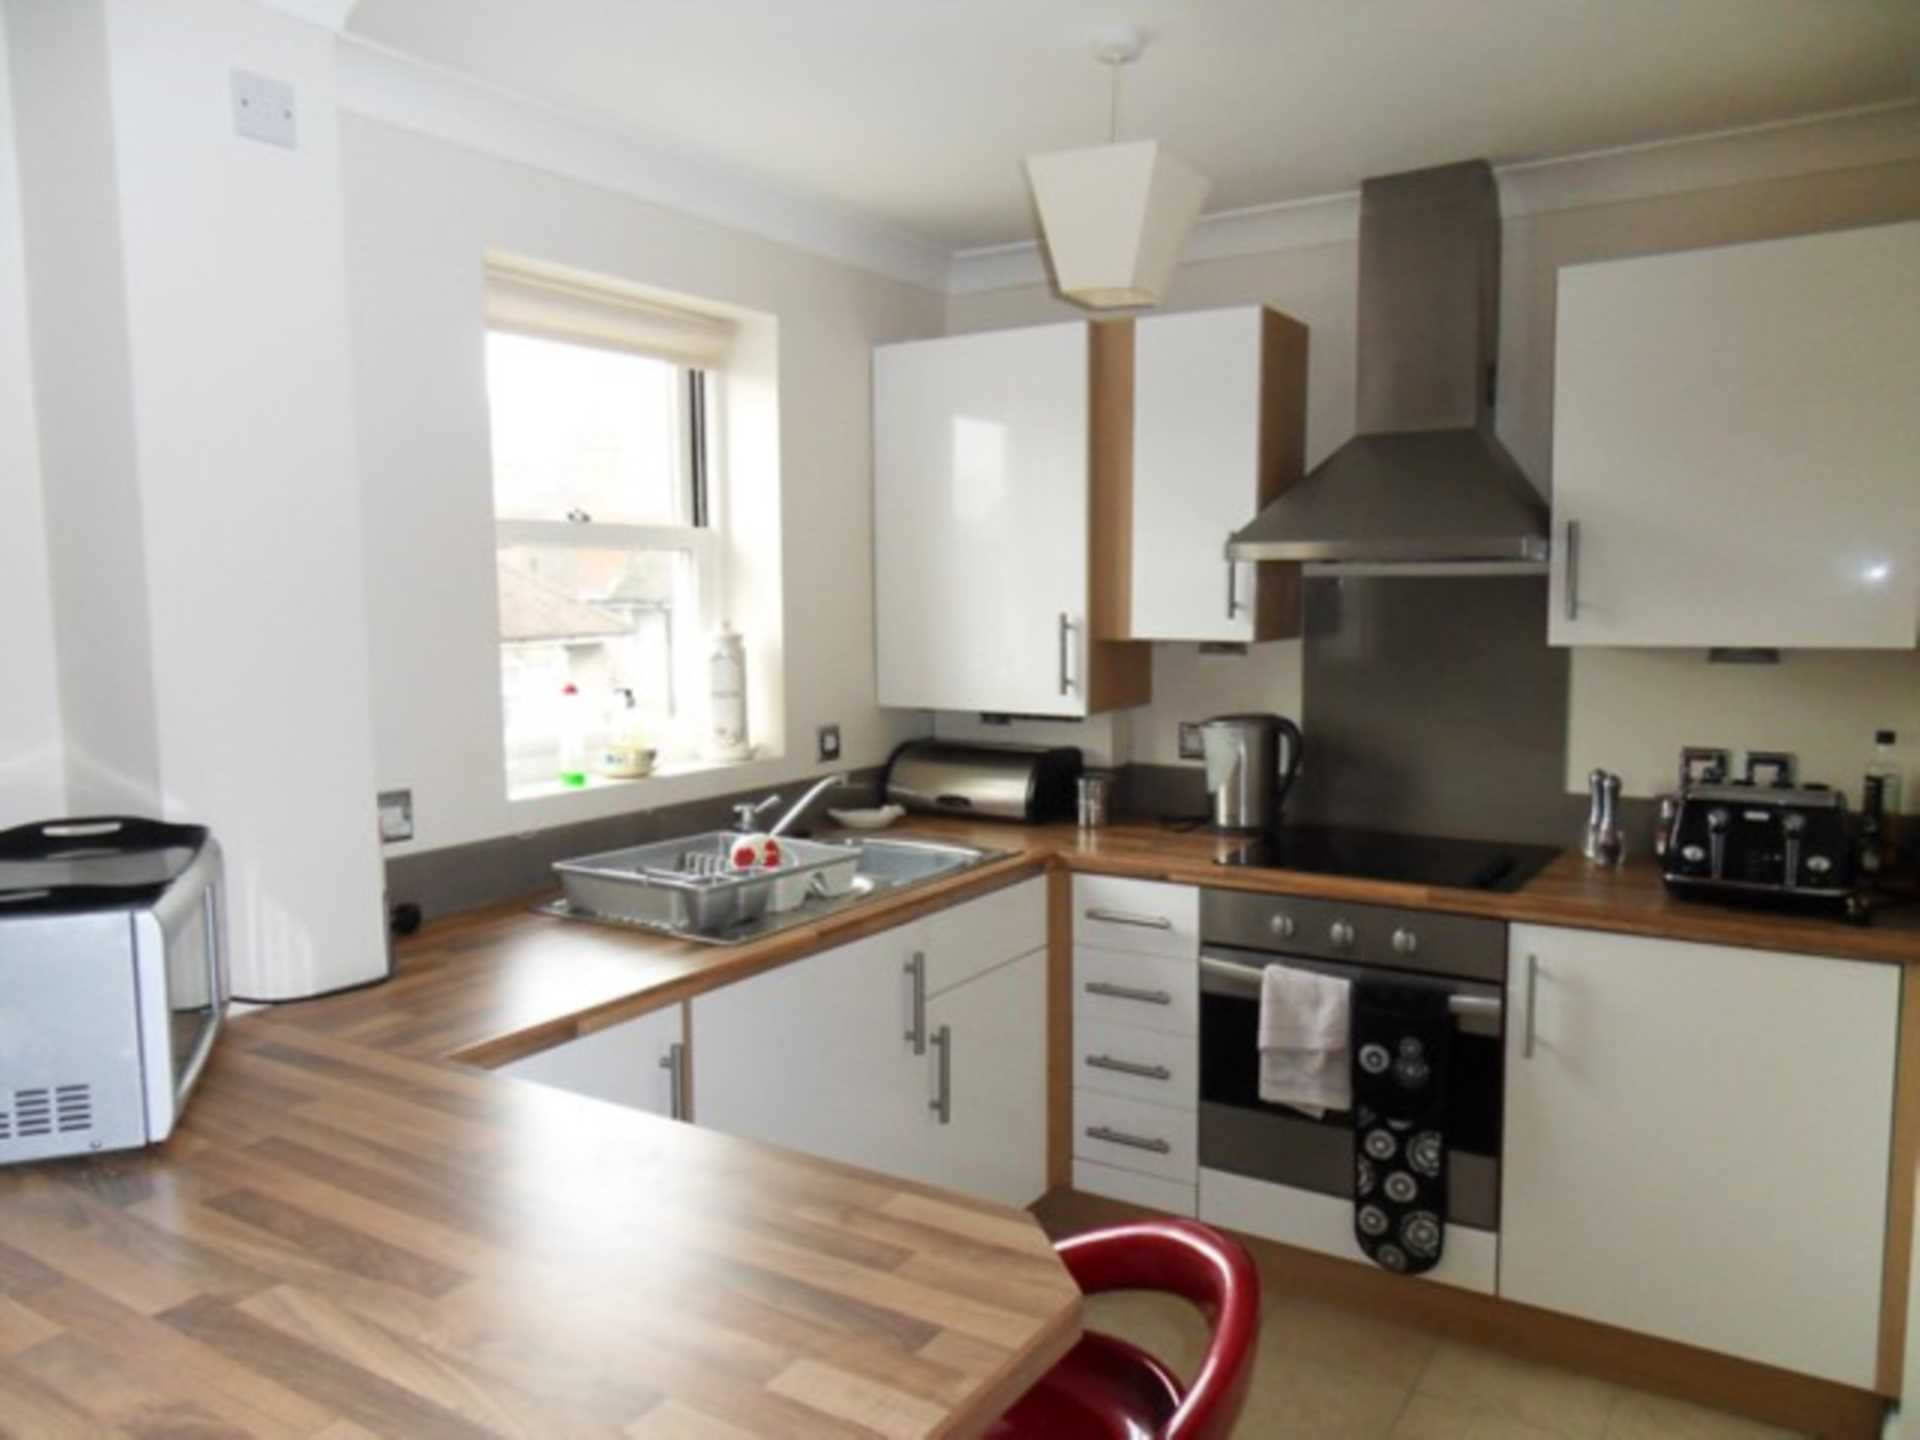 2 bed flat to rent in The Orkneys, Blandford Forum, Blandford Forum  - Property Image 3